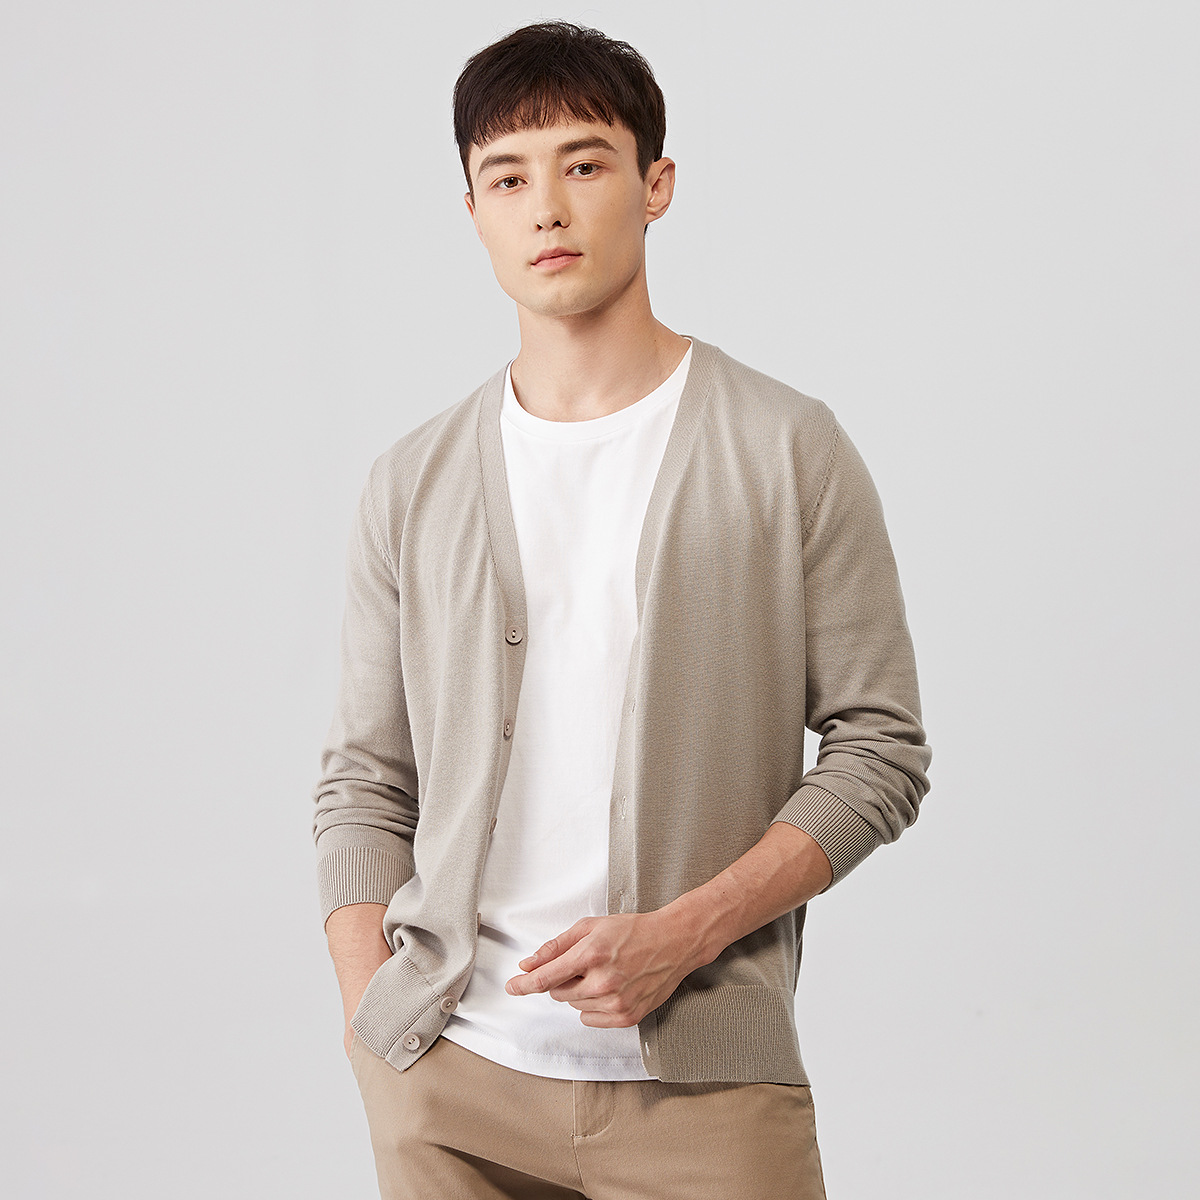 Men Spring Autumn Button Knitted Sweater Mens V-Neck Solid Thin Cardigan Coats Male Casual Cardigan Sweater